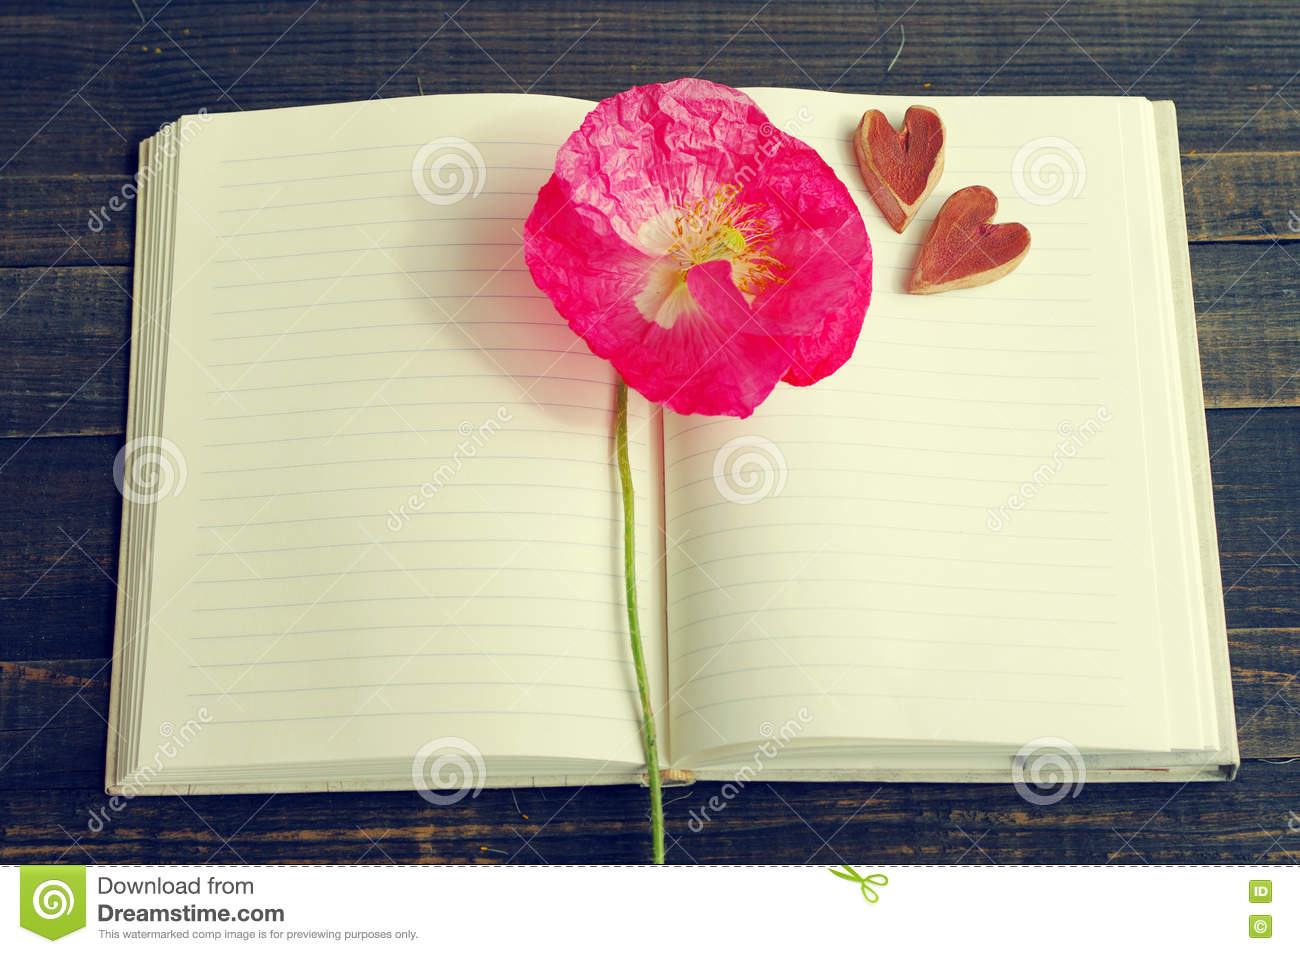 Pink Flower Of Poppy On An Open Notebook And Two Decorative Hearts